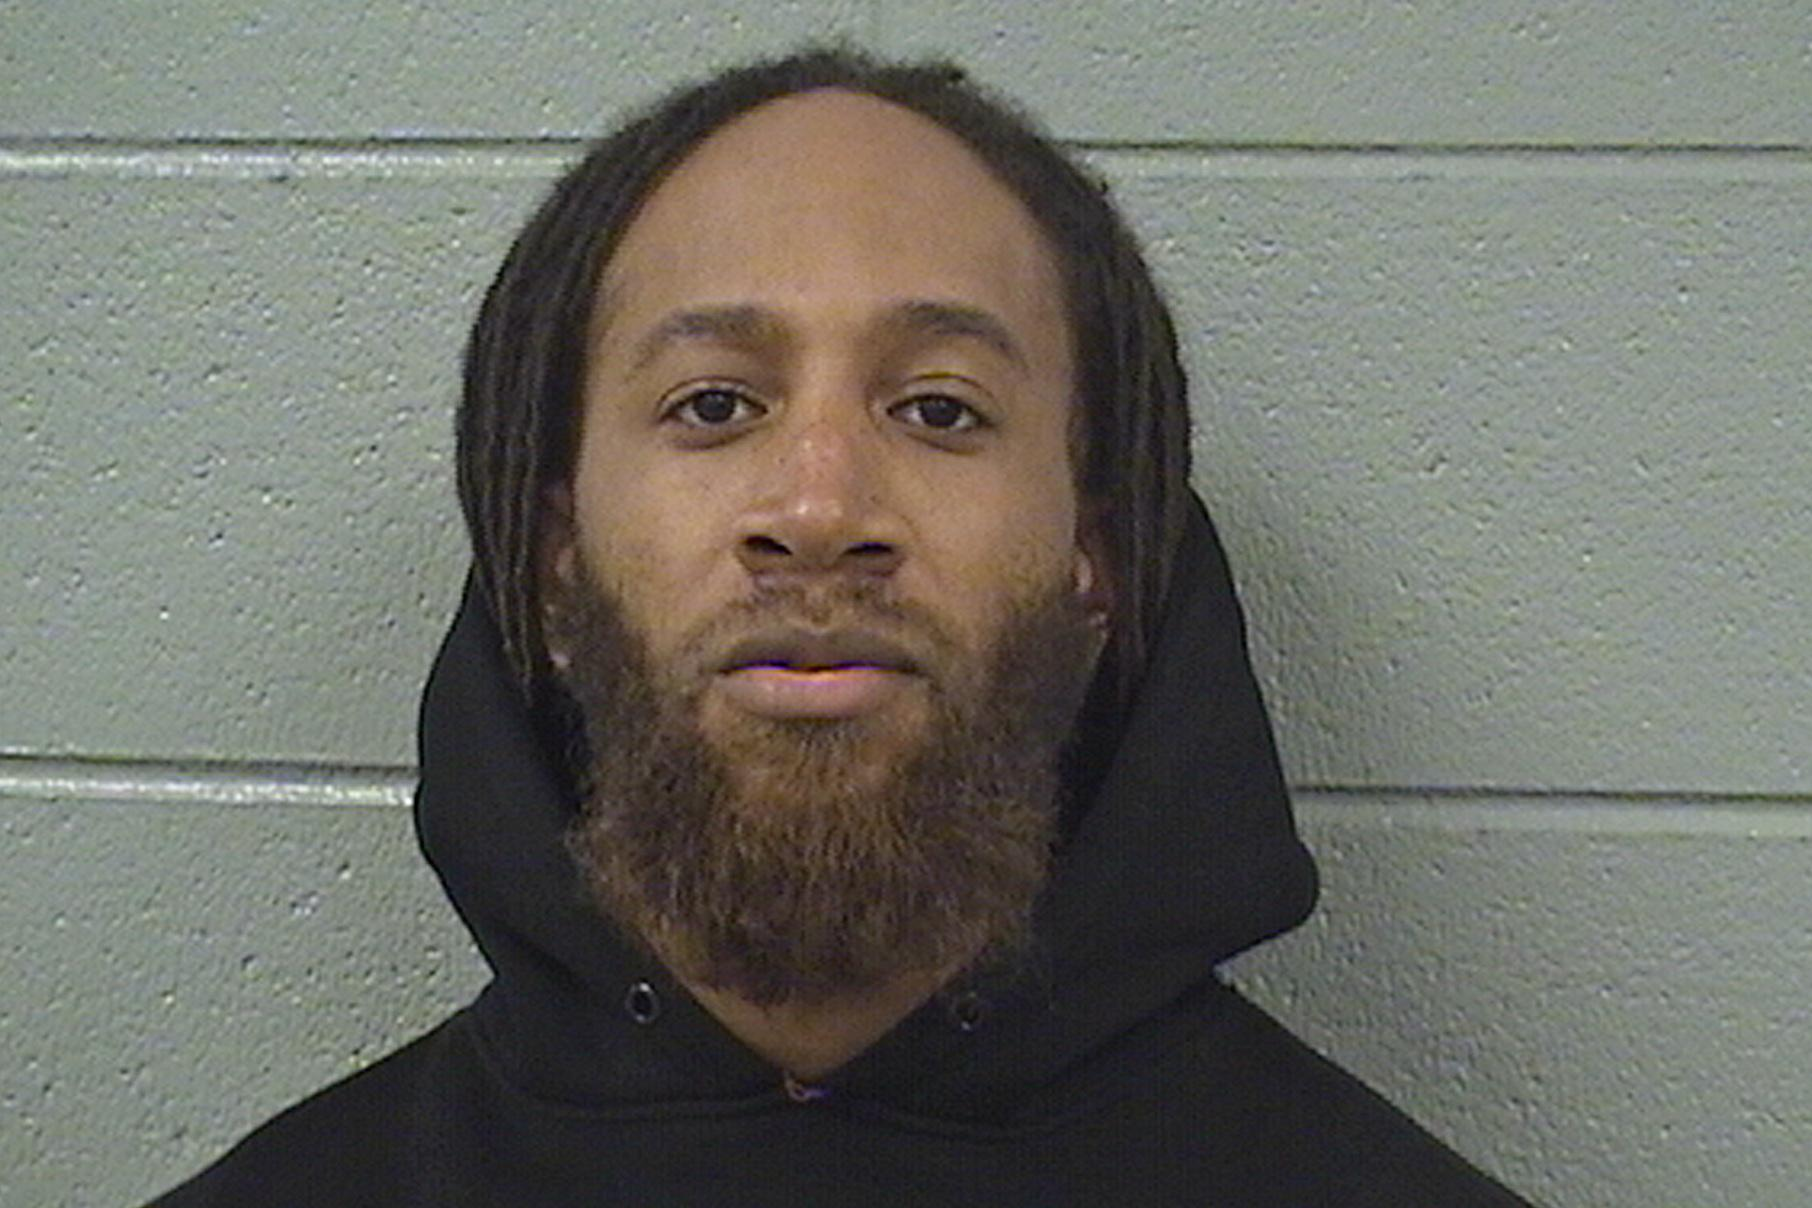 In this photo provided by the Cook County Sheriff's Office, Michael Haywood is pictured in a booking photo dated Feb. 13, 2019, in Chicago. (Cook County Sheriff's Office via AP)